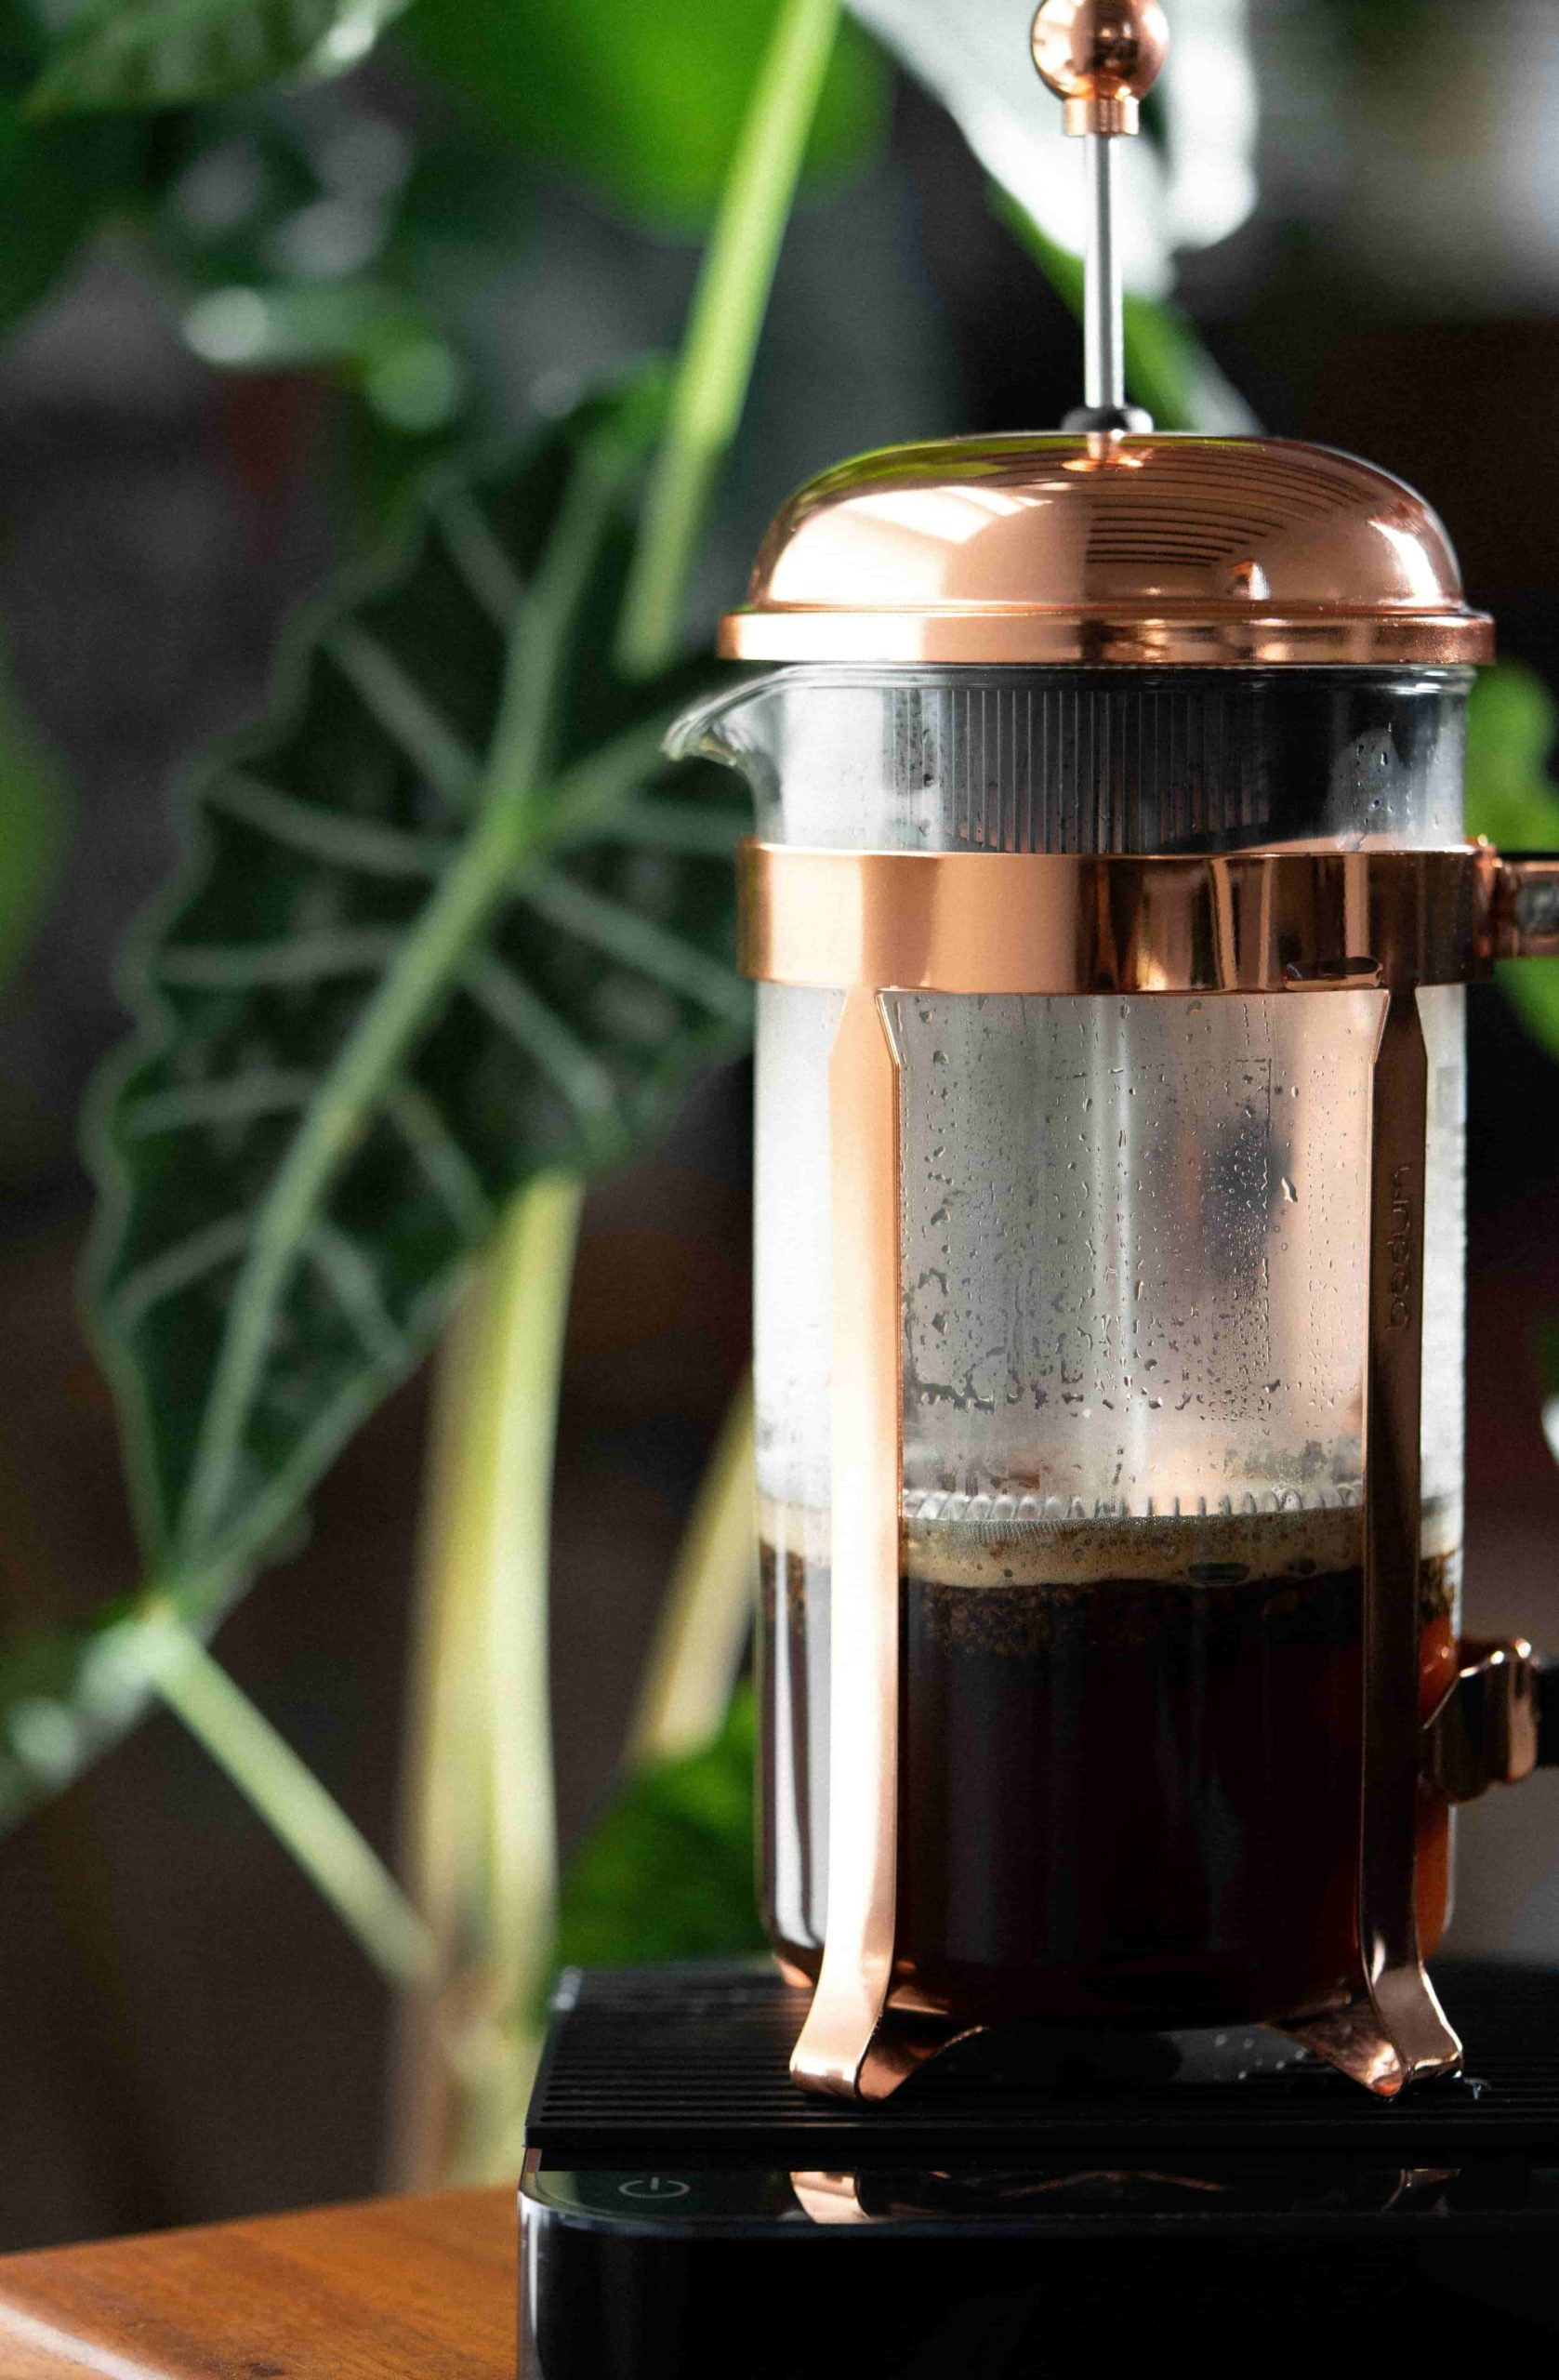 Classic Bodum Glass and Copper French Press with brewed coffee inside atop an Acaia scale with indoor plants background